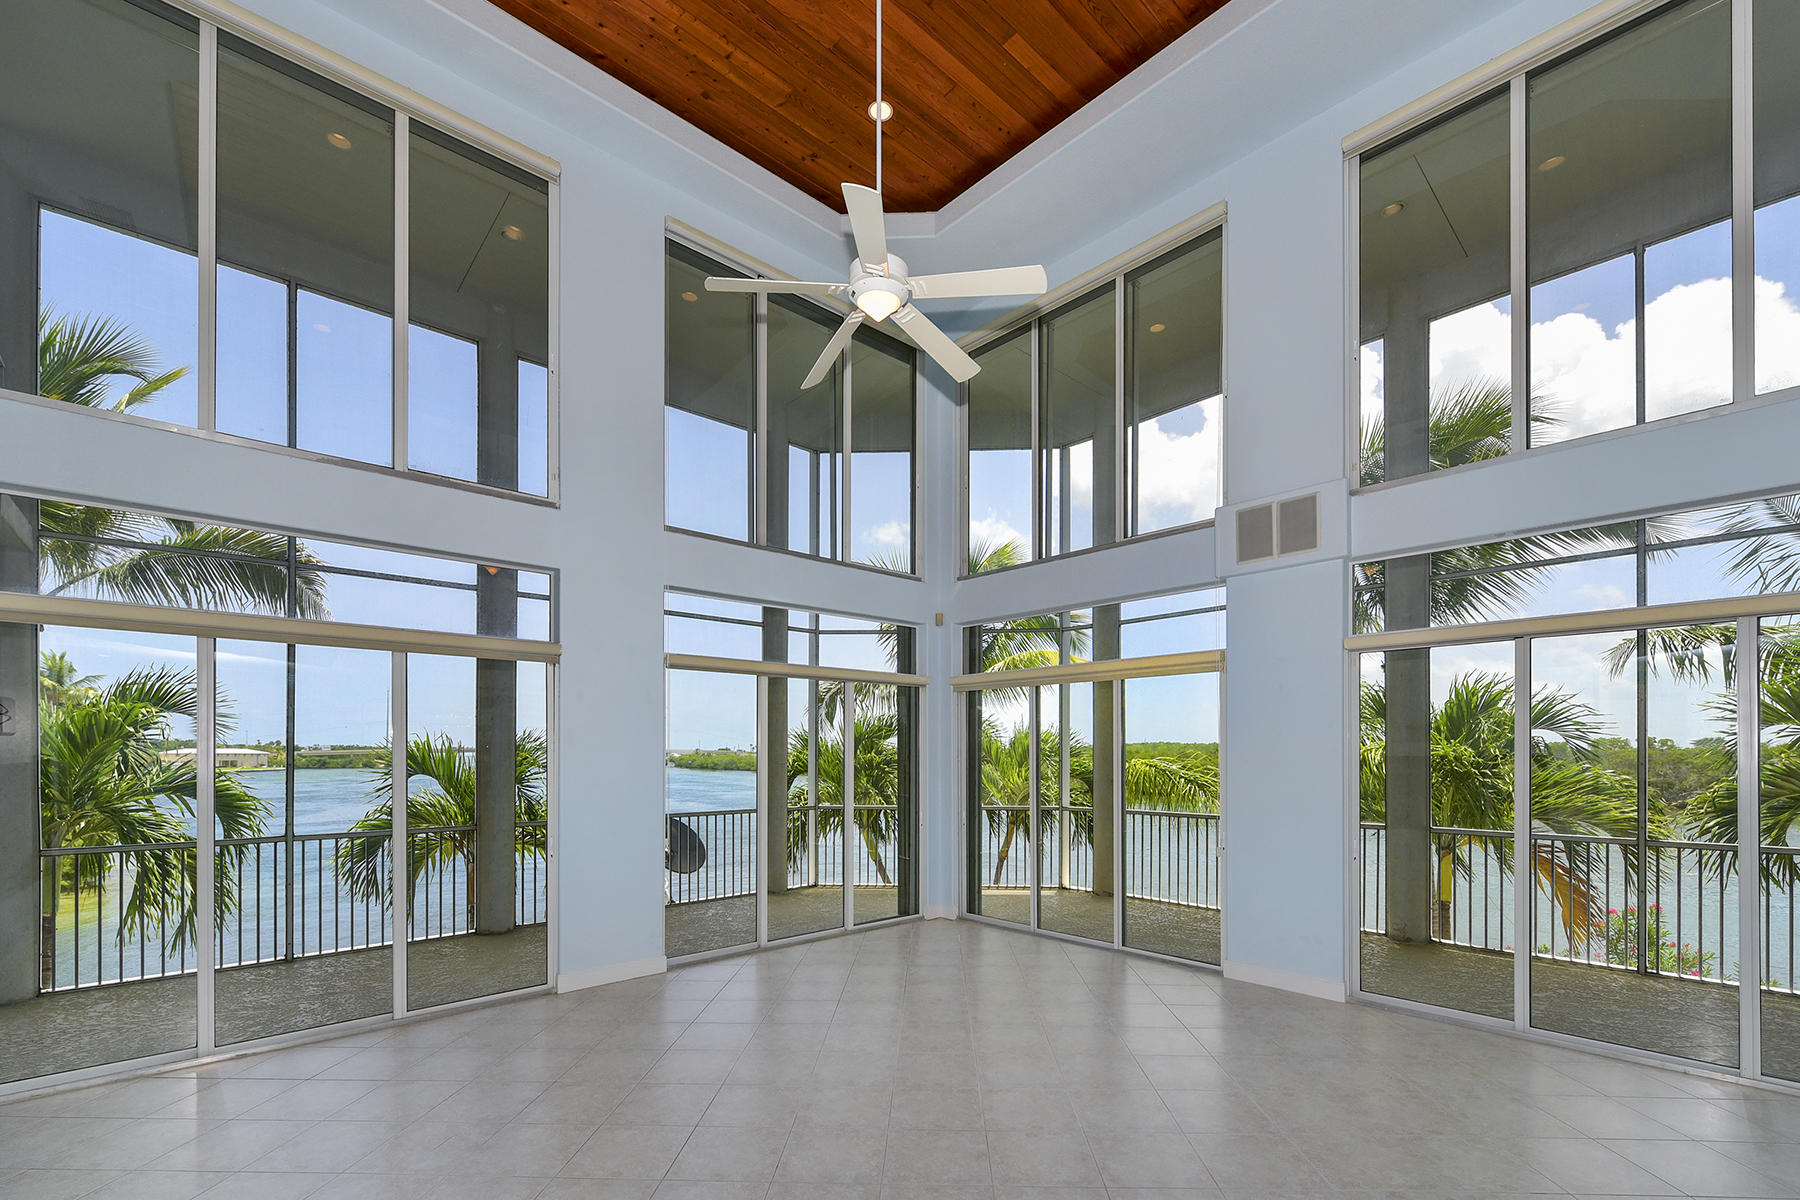 Single Family Homes for Active at 161 Palo De Oro Drive, Islamorada, FL 161 Palo De Oro Drive Islamorada, Florida 33036 United States